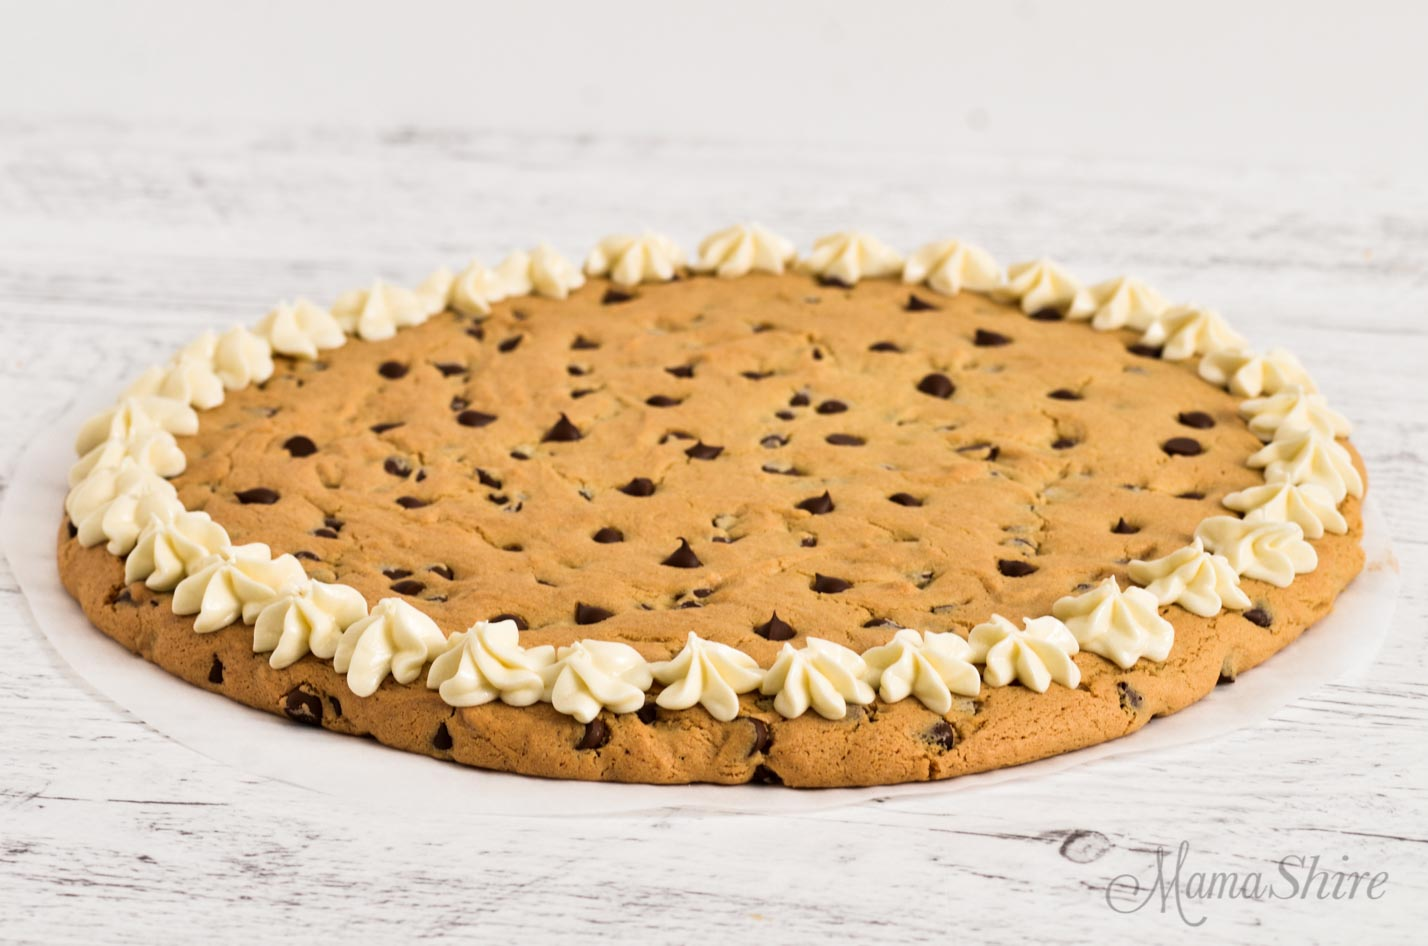 Chocolate chip pizza cookie with icing.